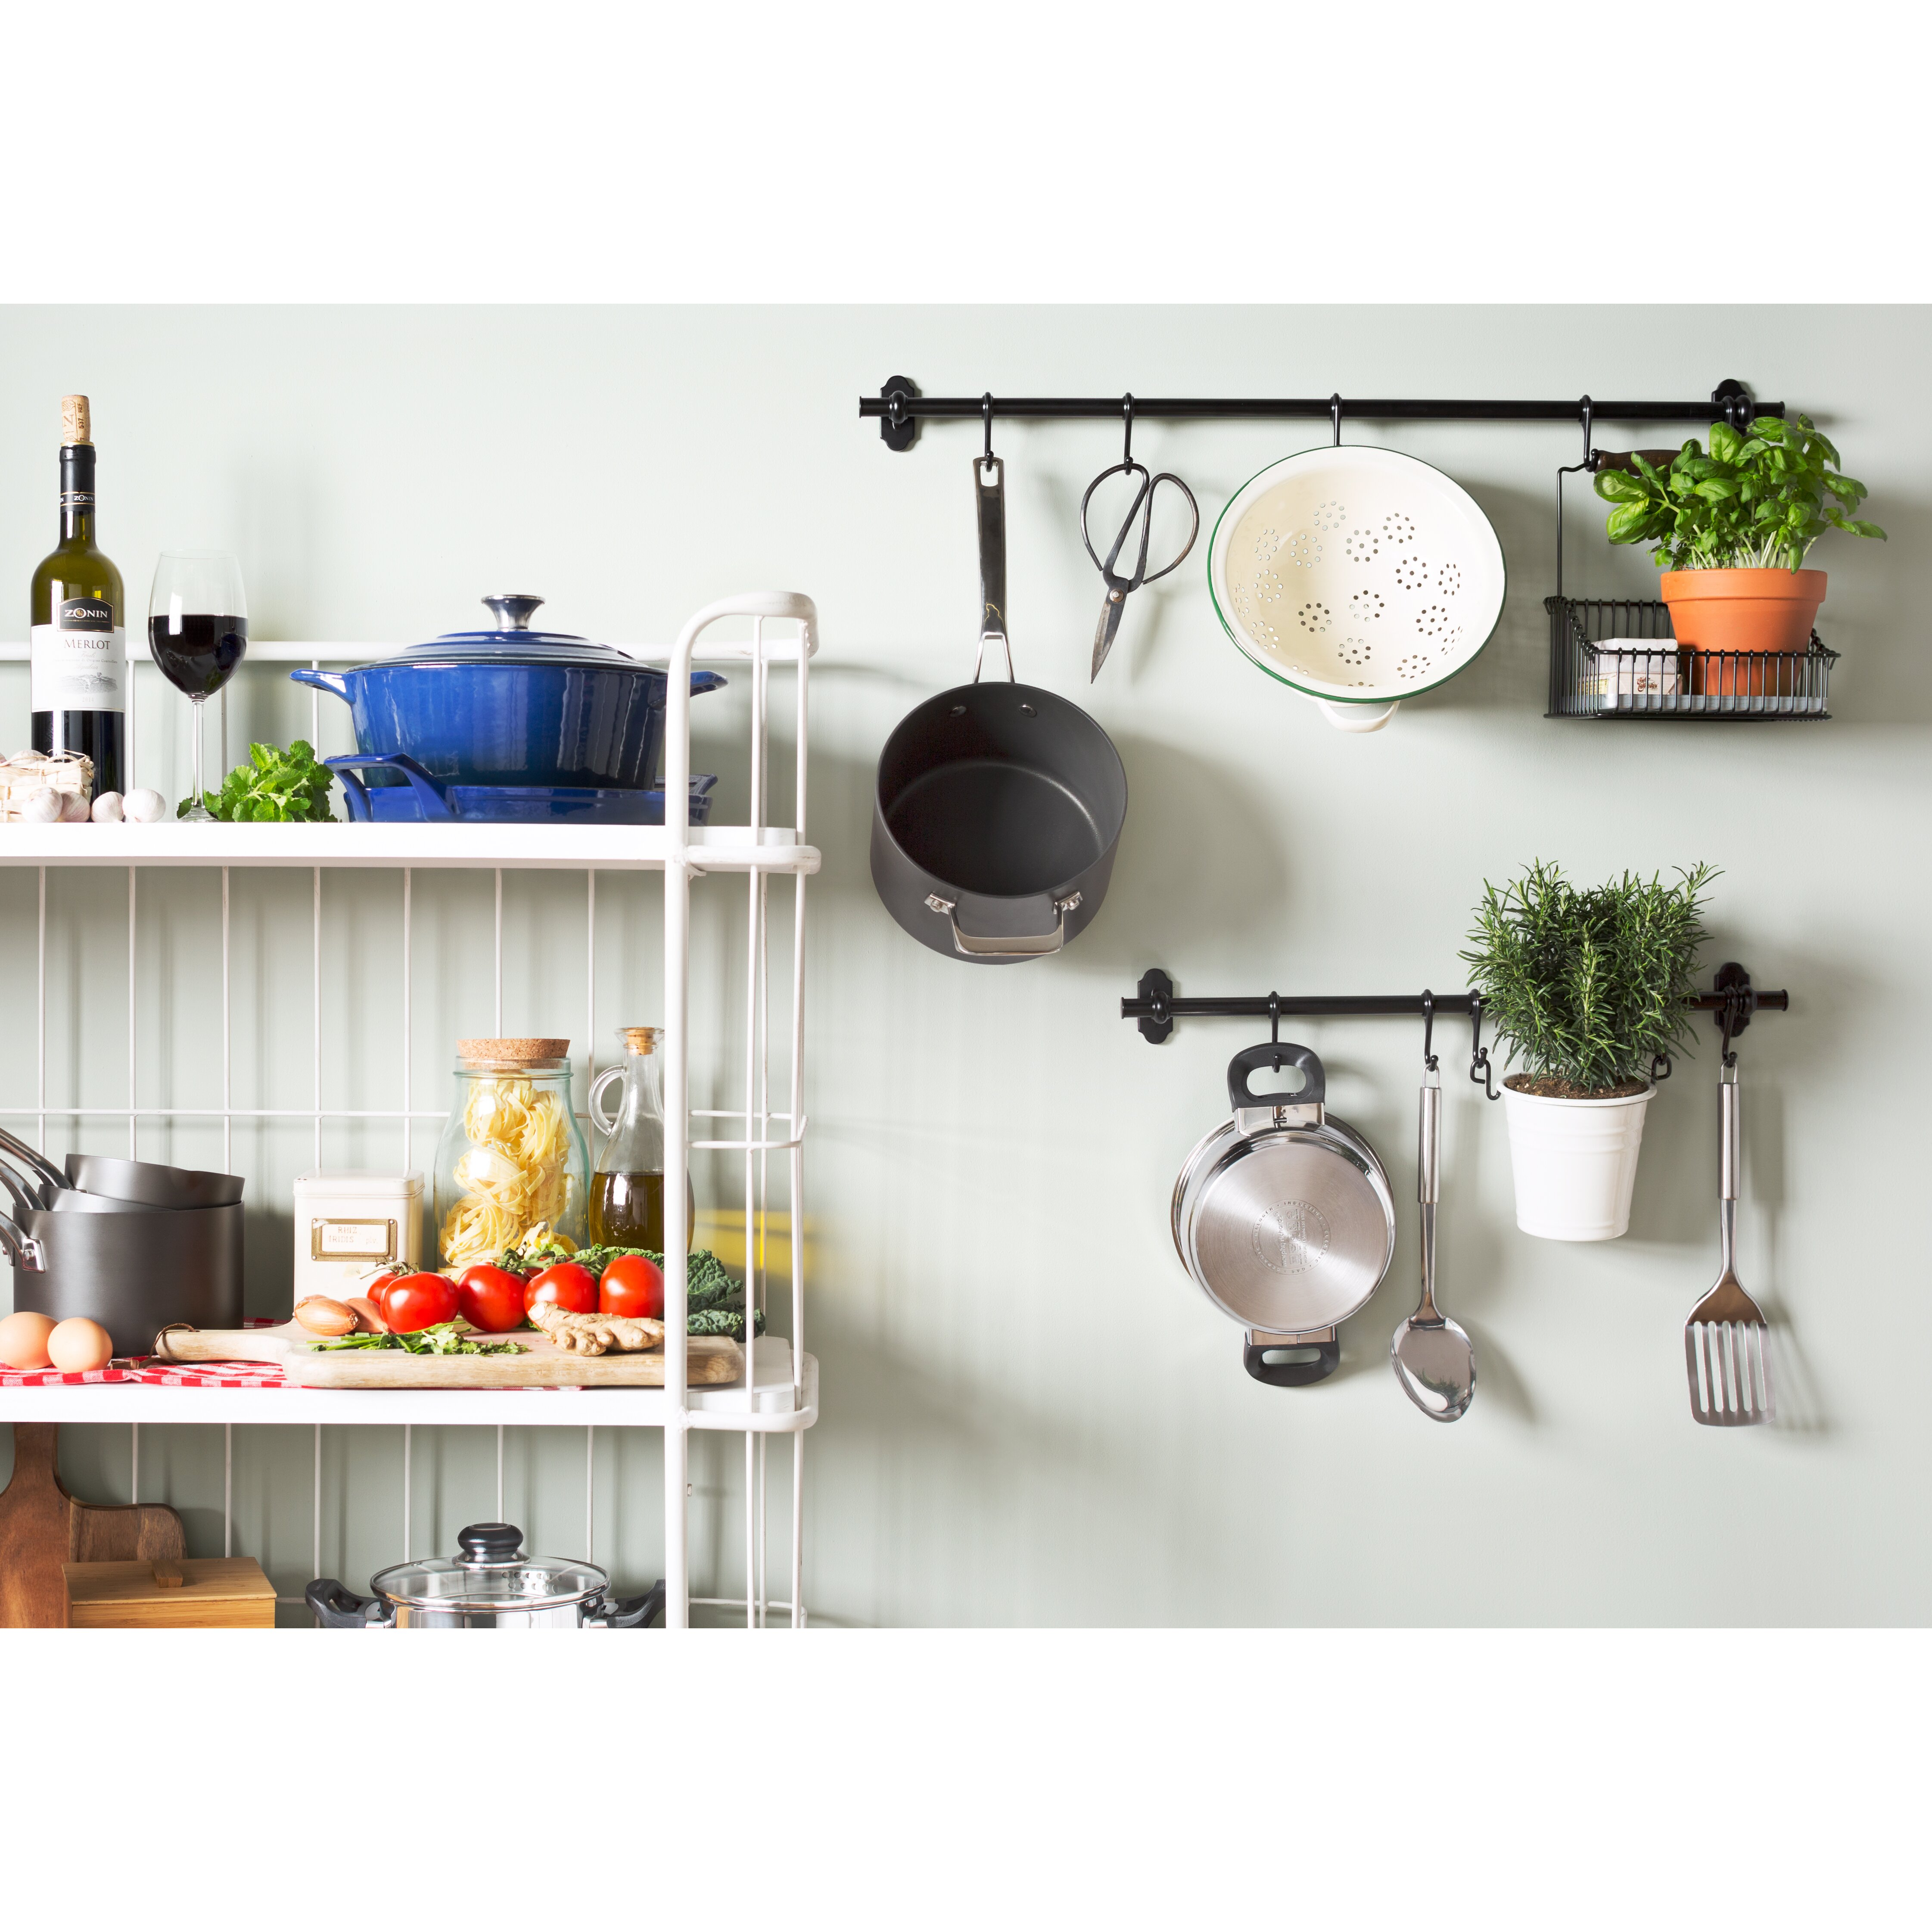 Morphy Richards Pots And Pans: Morphy Richards 8-Piece Stainless Steel Cookware Set